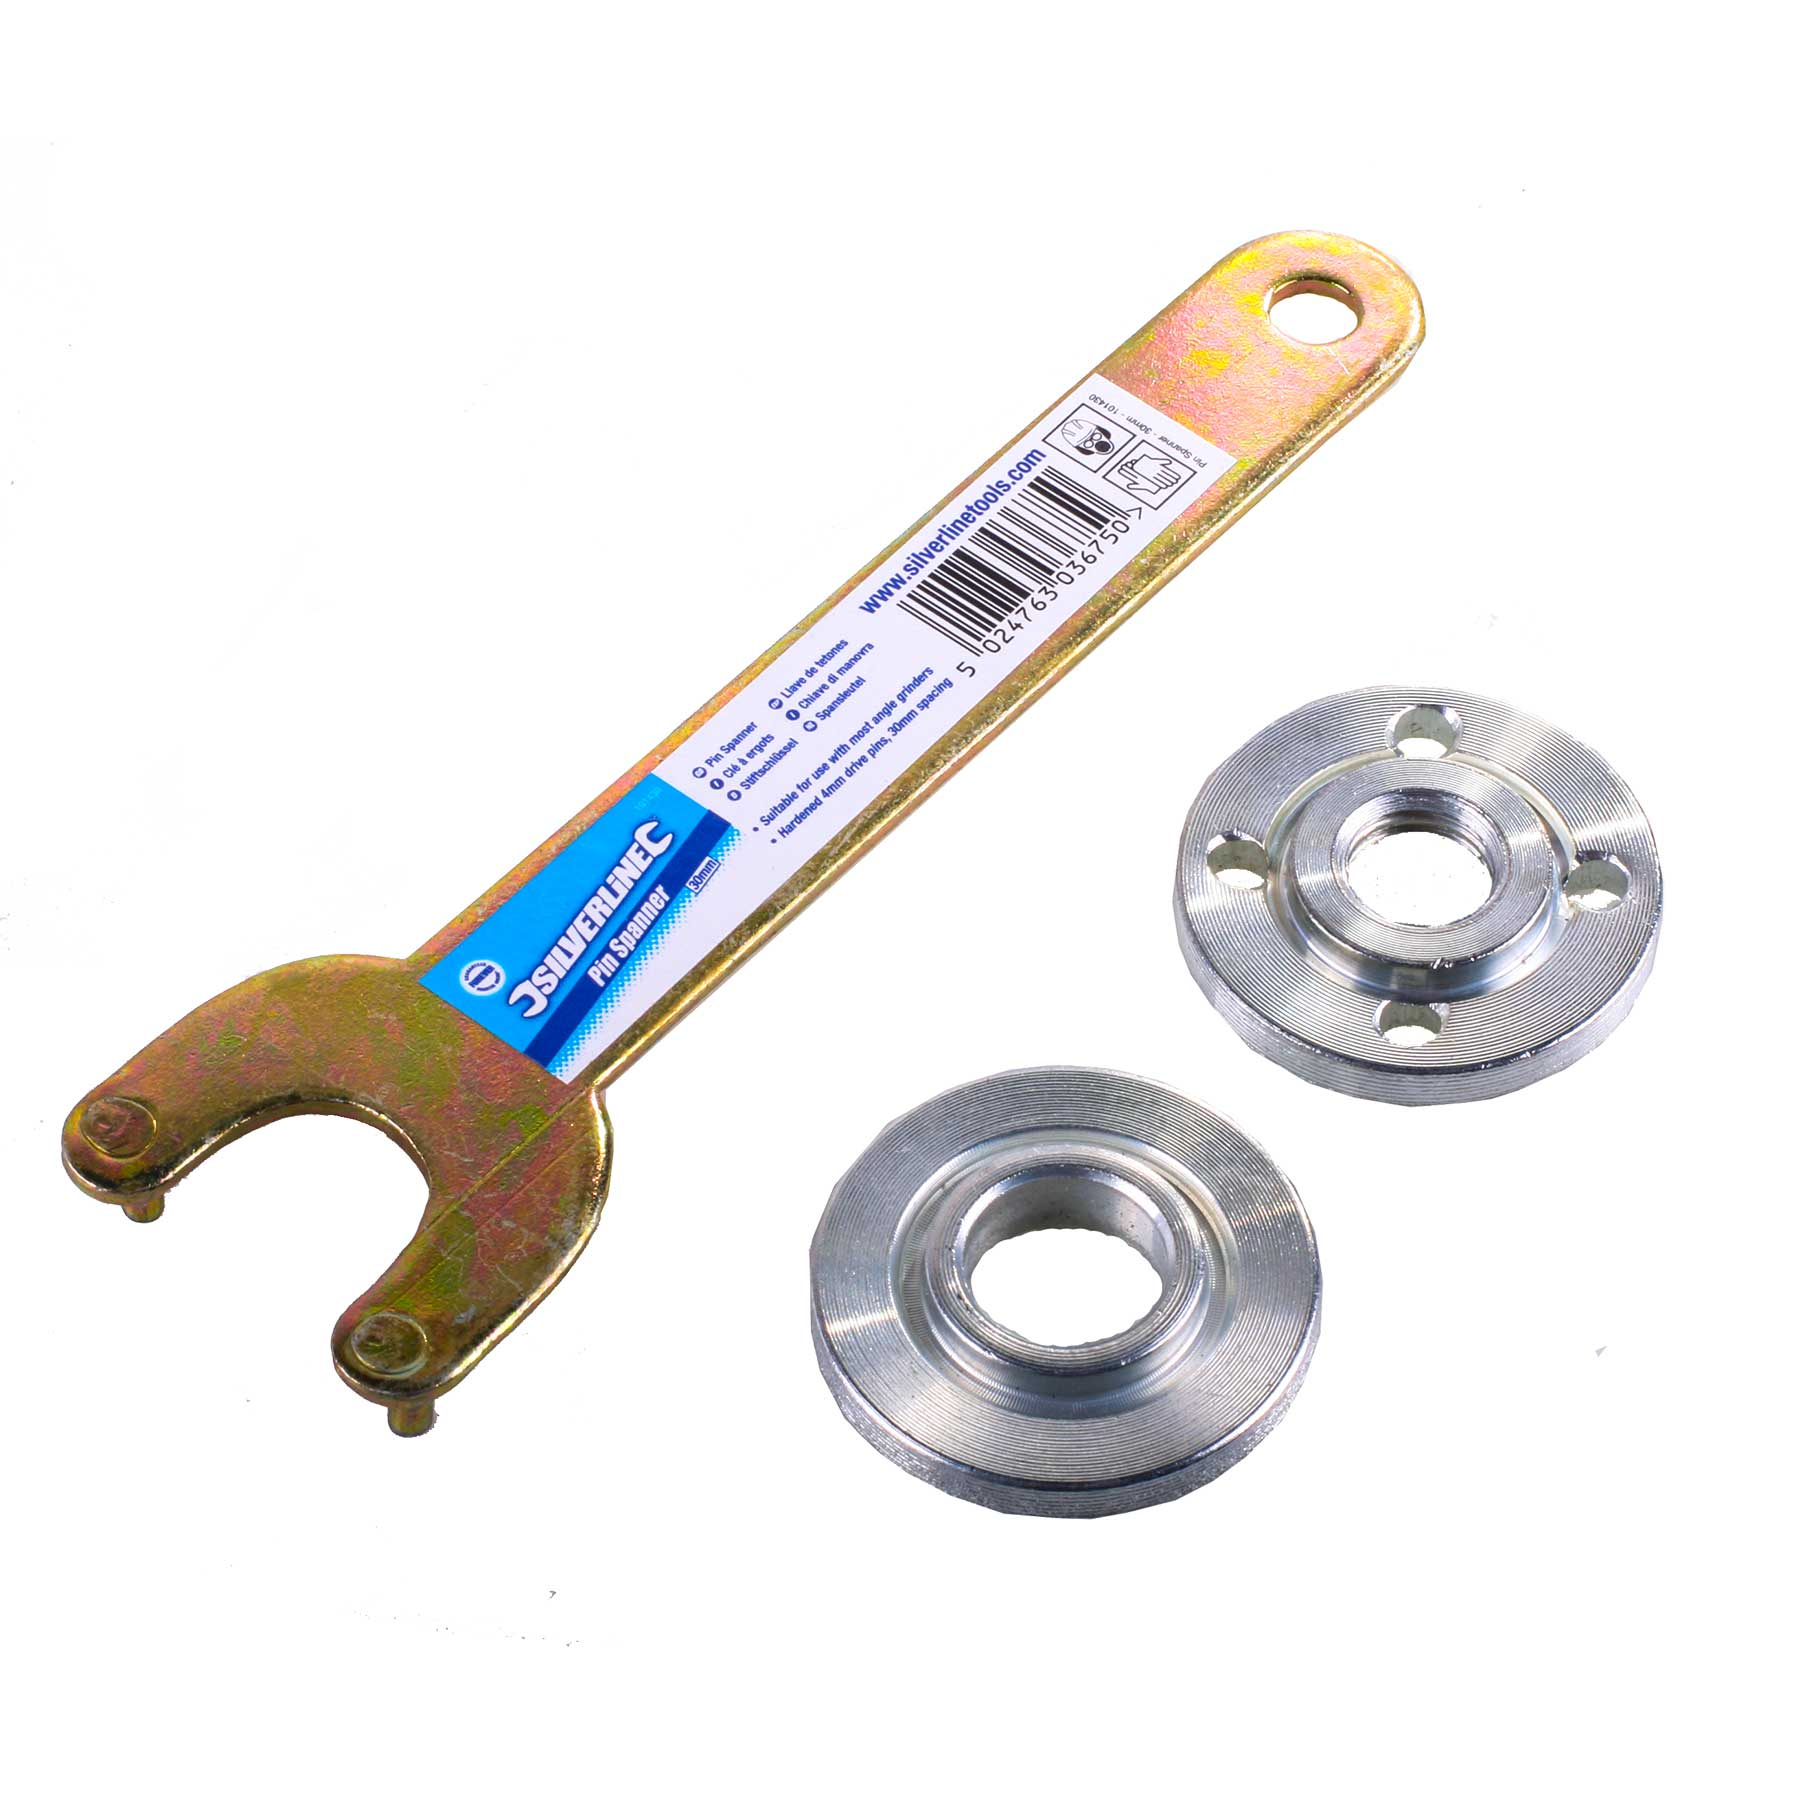 Angle grinder key pin wrench spanner and flange nut set